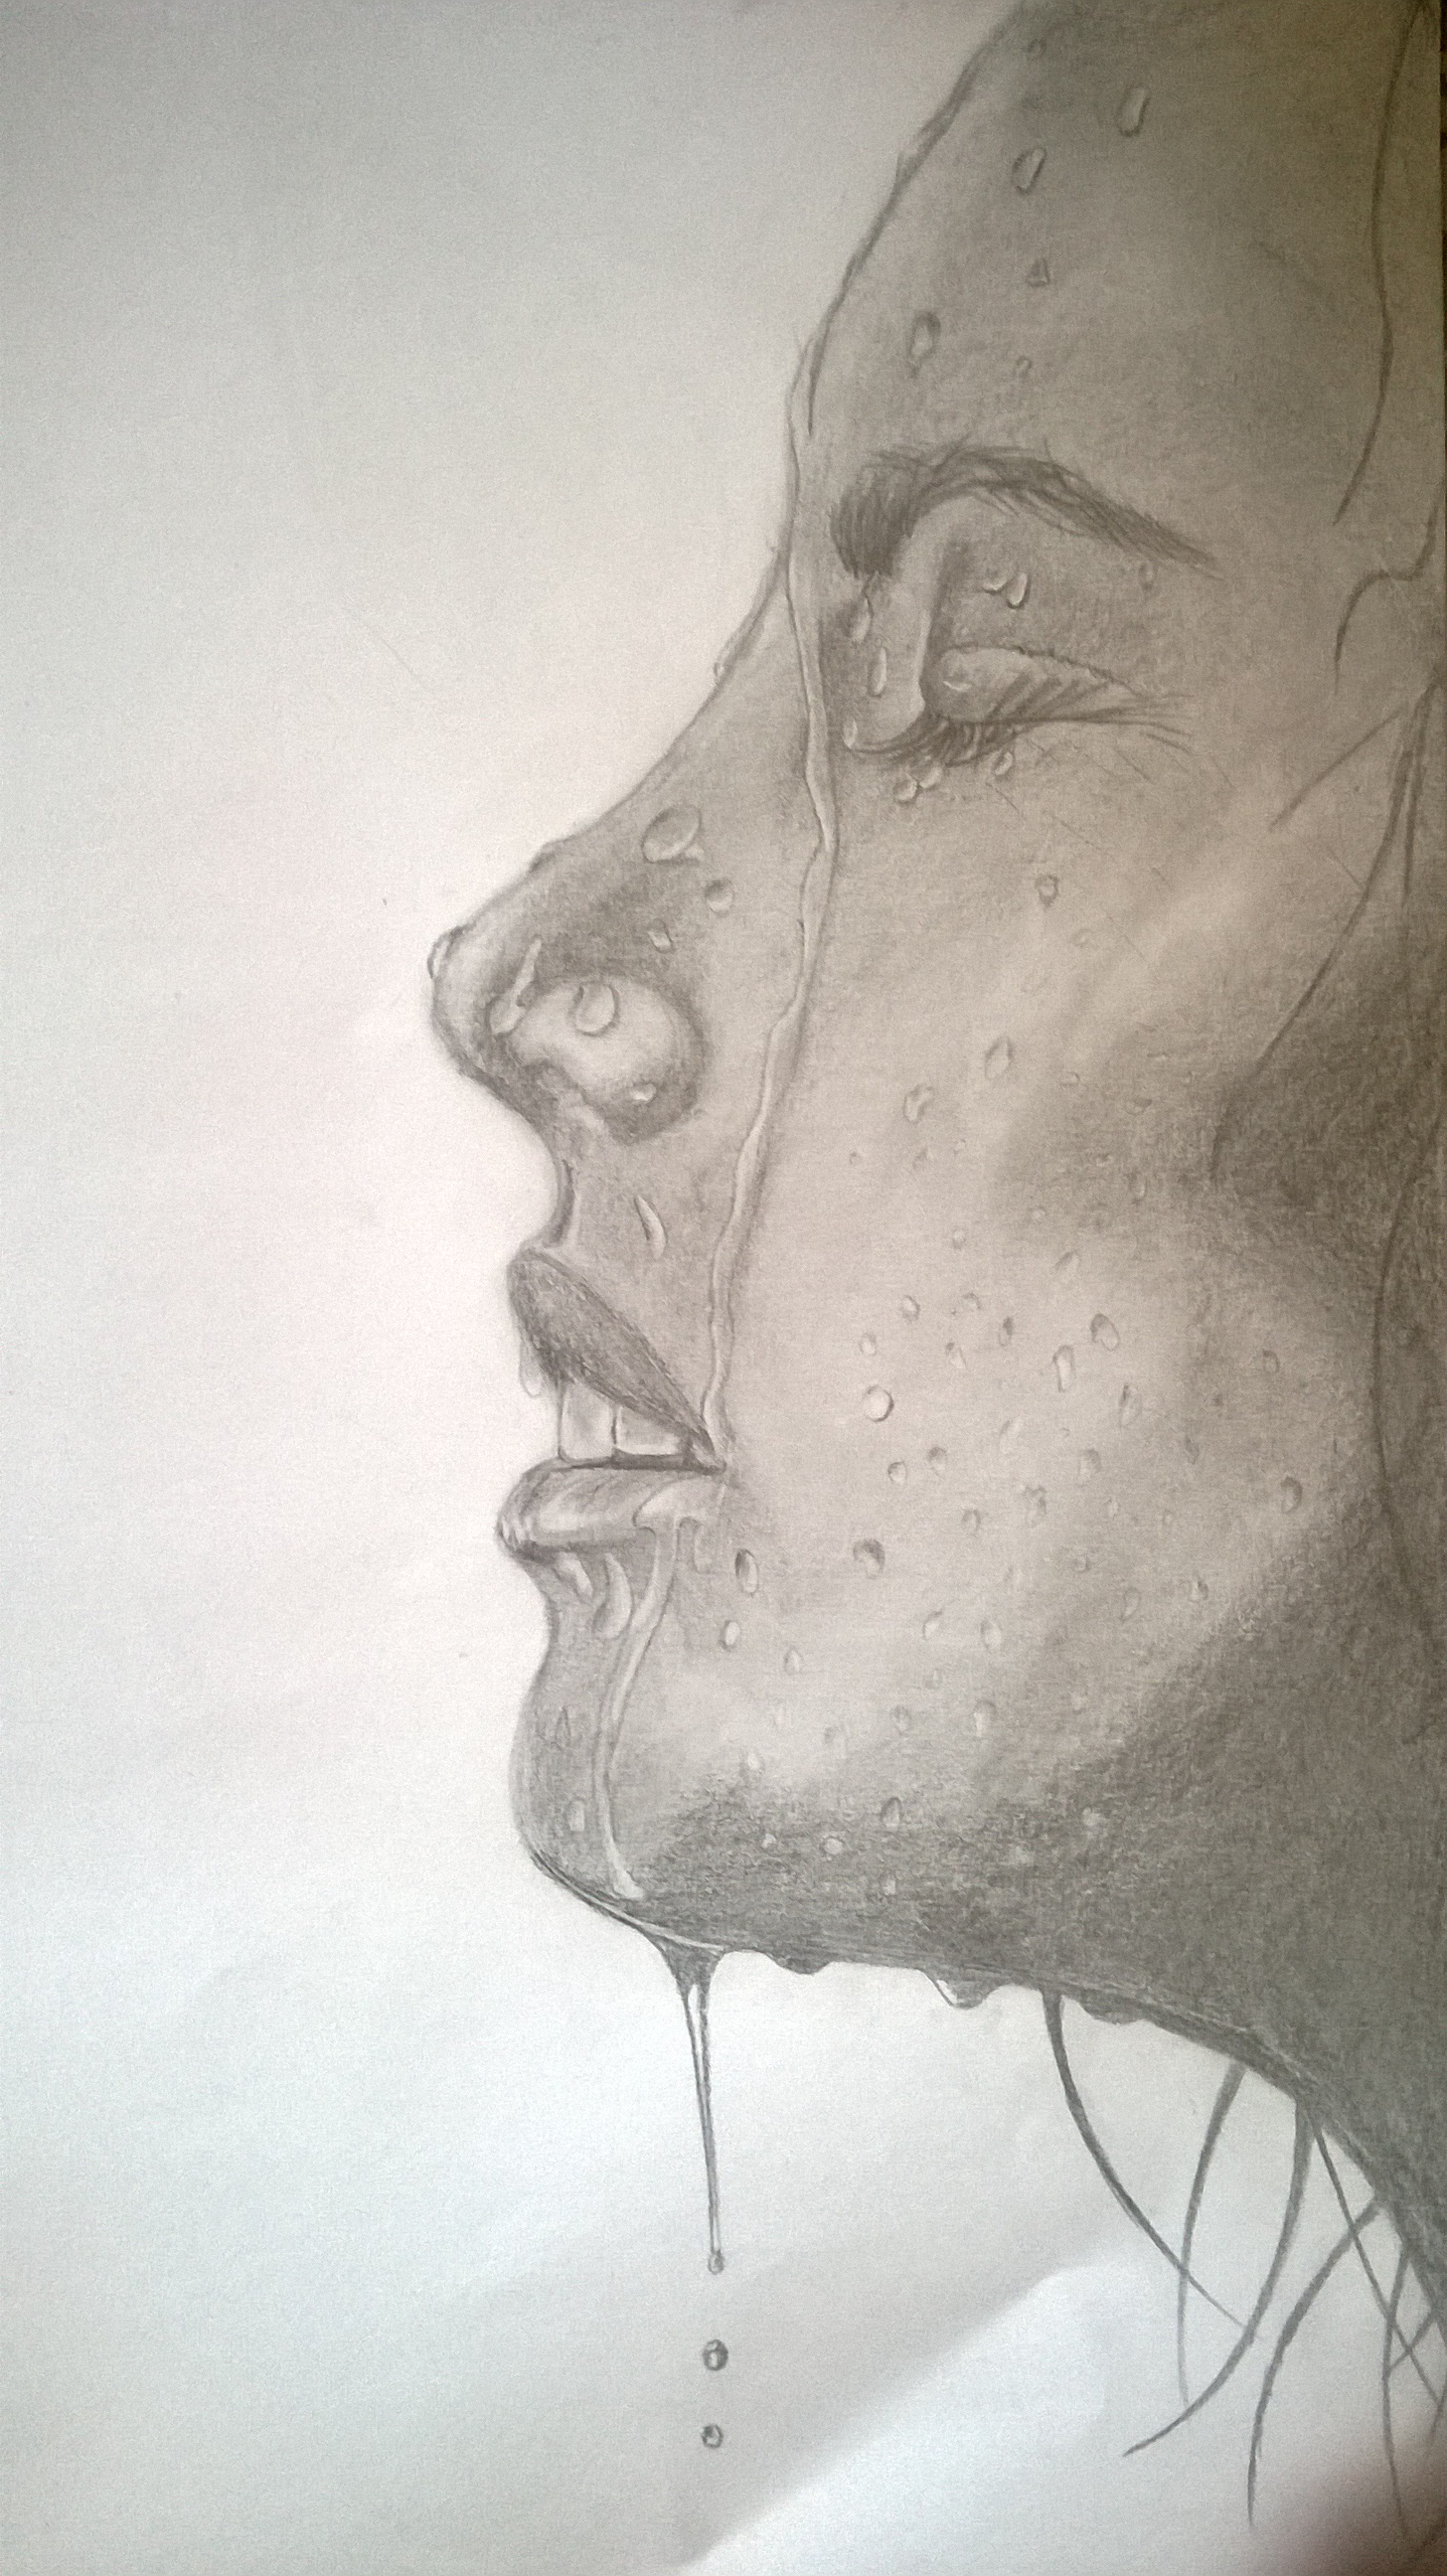 Drawn water droplets face drawing On woman's – drawing face